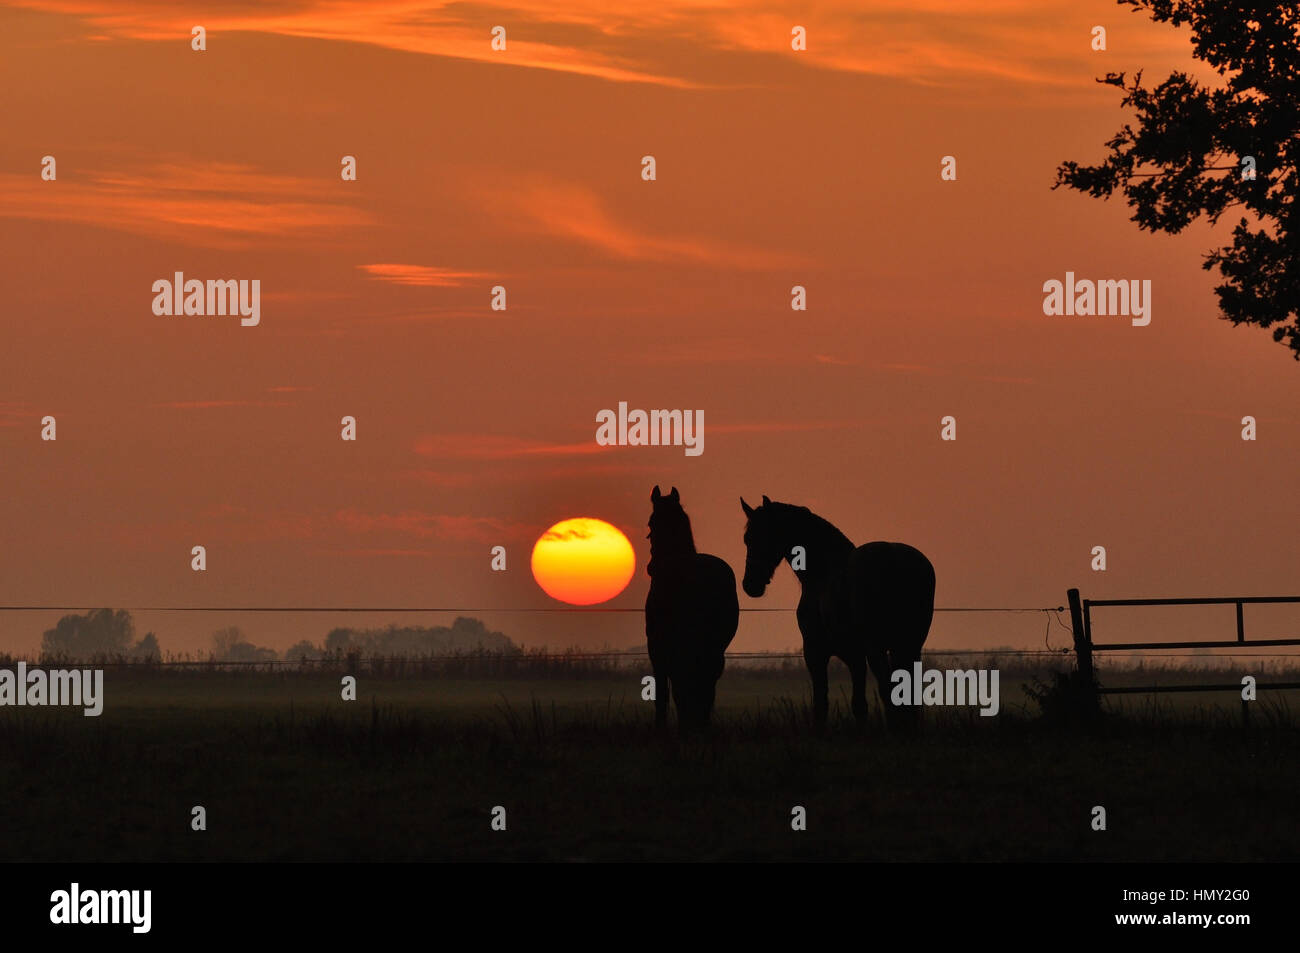 Two Horses in a field at sunset Stock Photo